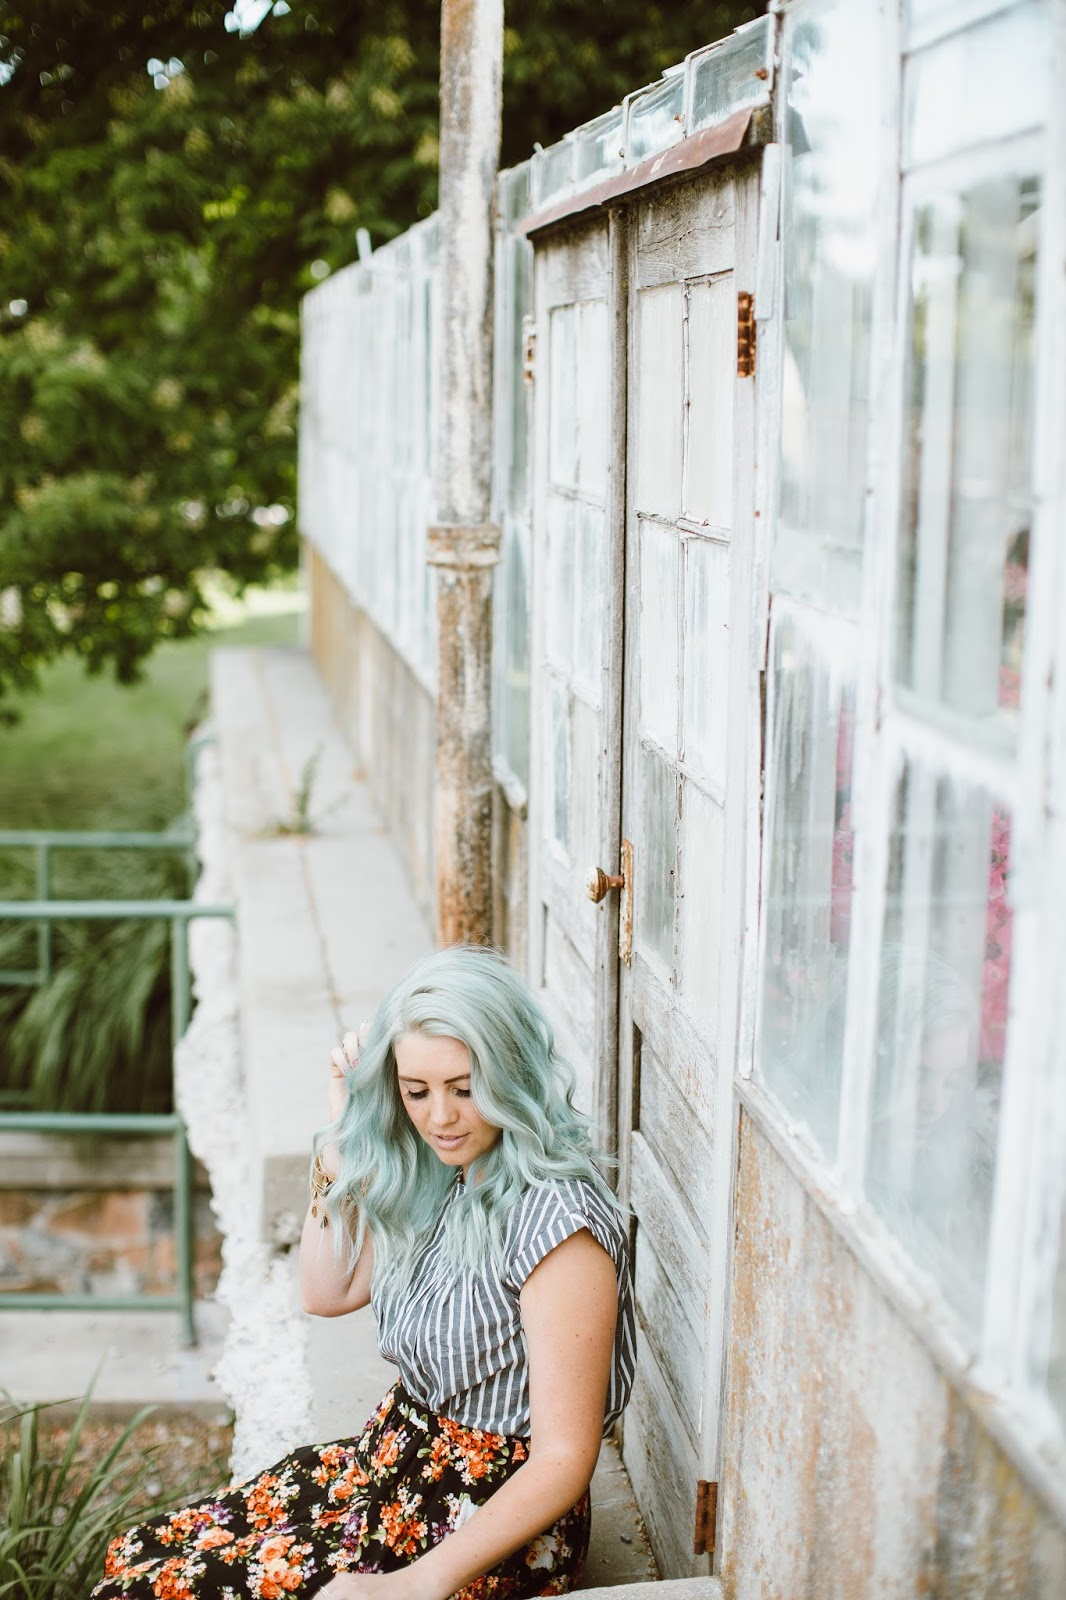 Mint Hair, The High Pines, Fashion Blogger